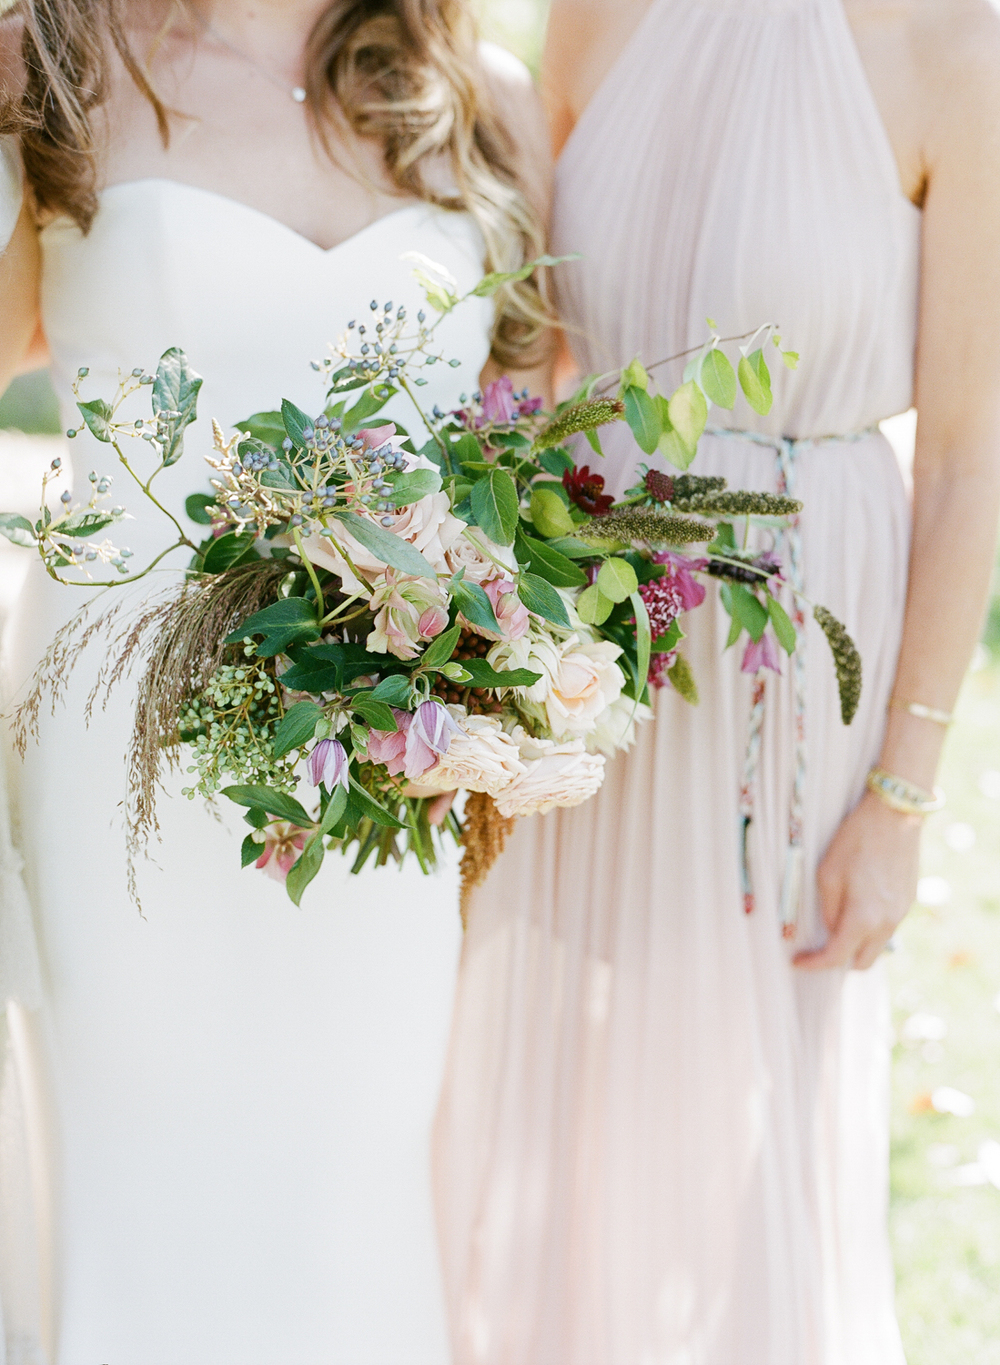 Tali, with a gorgeous, eclectic bouquet spilling out of her hands, stands with her bridesmaid; photo by Sylvie Gil